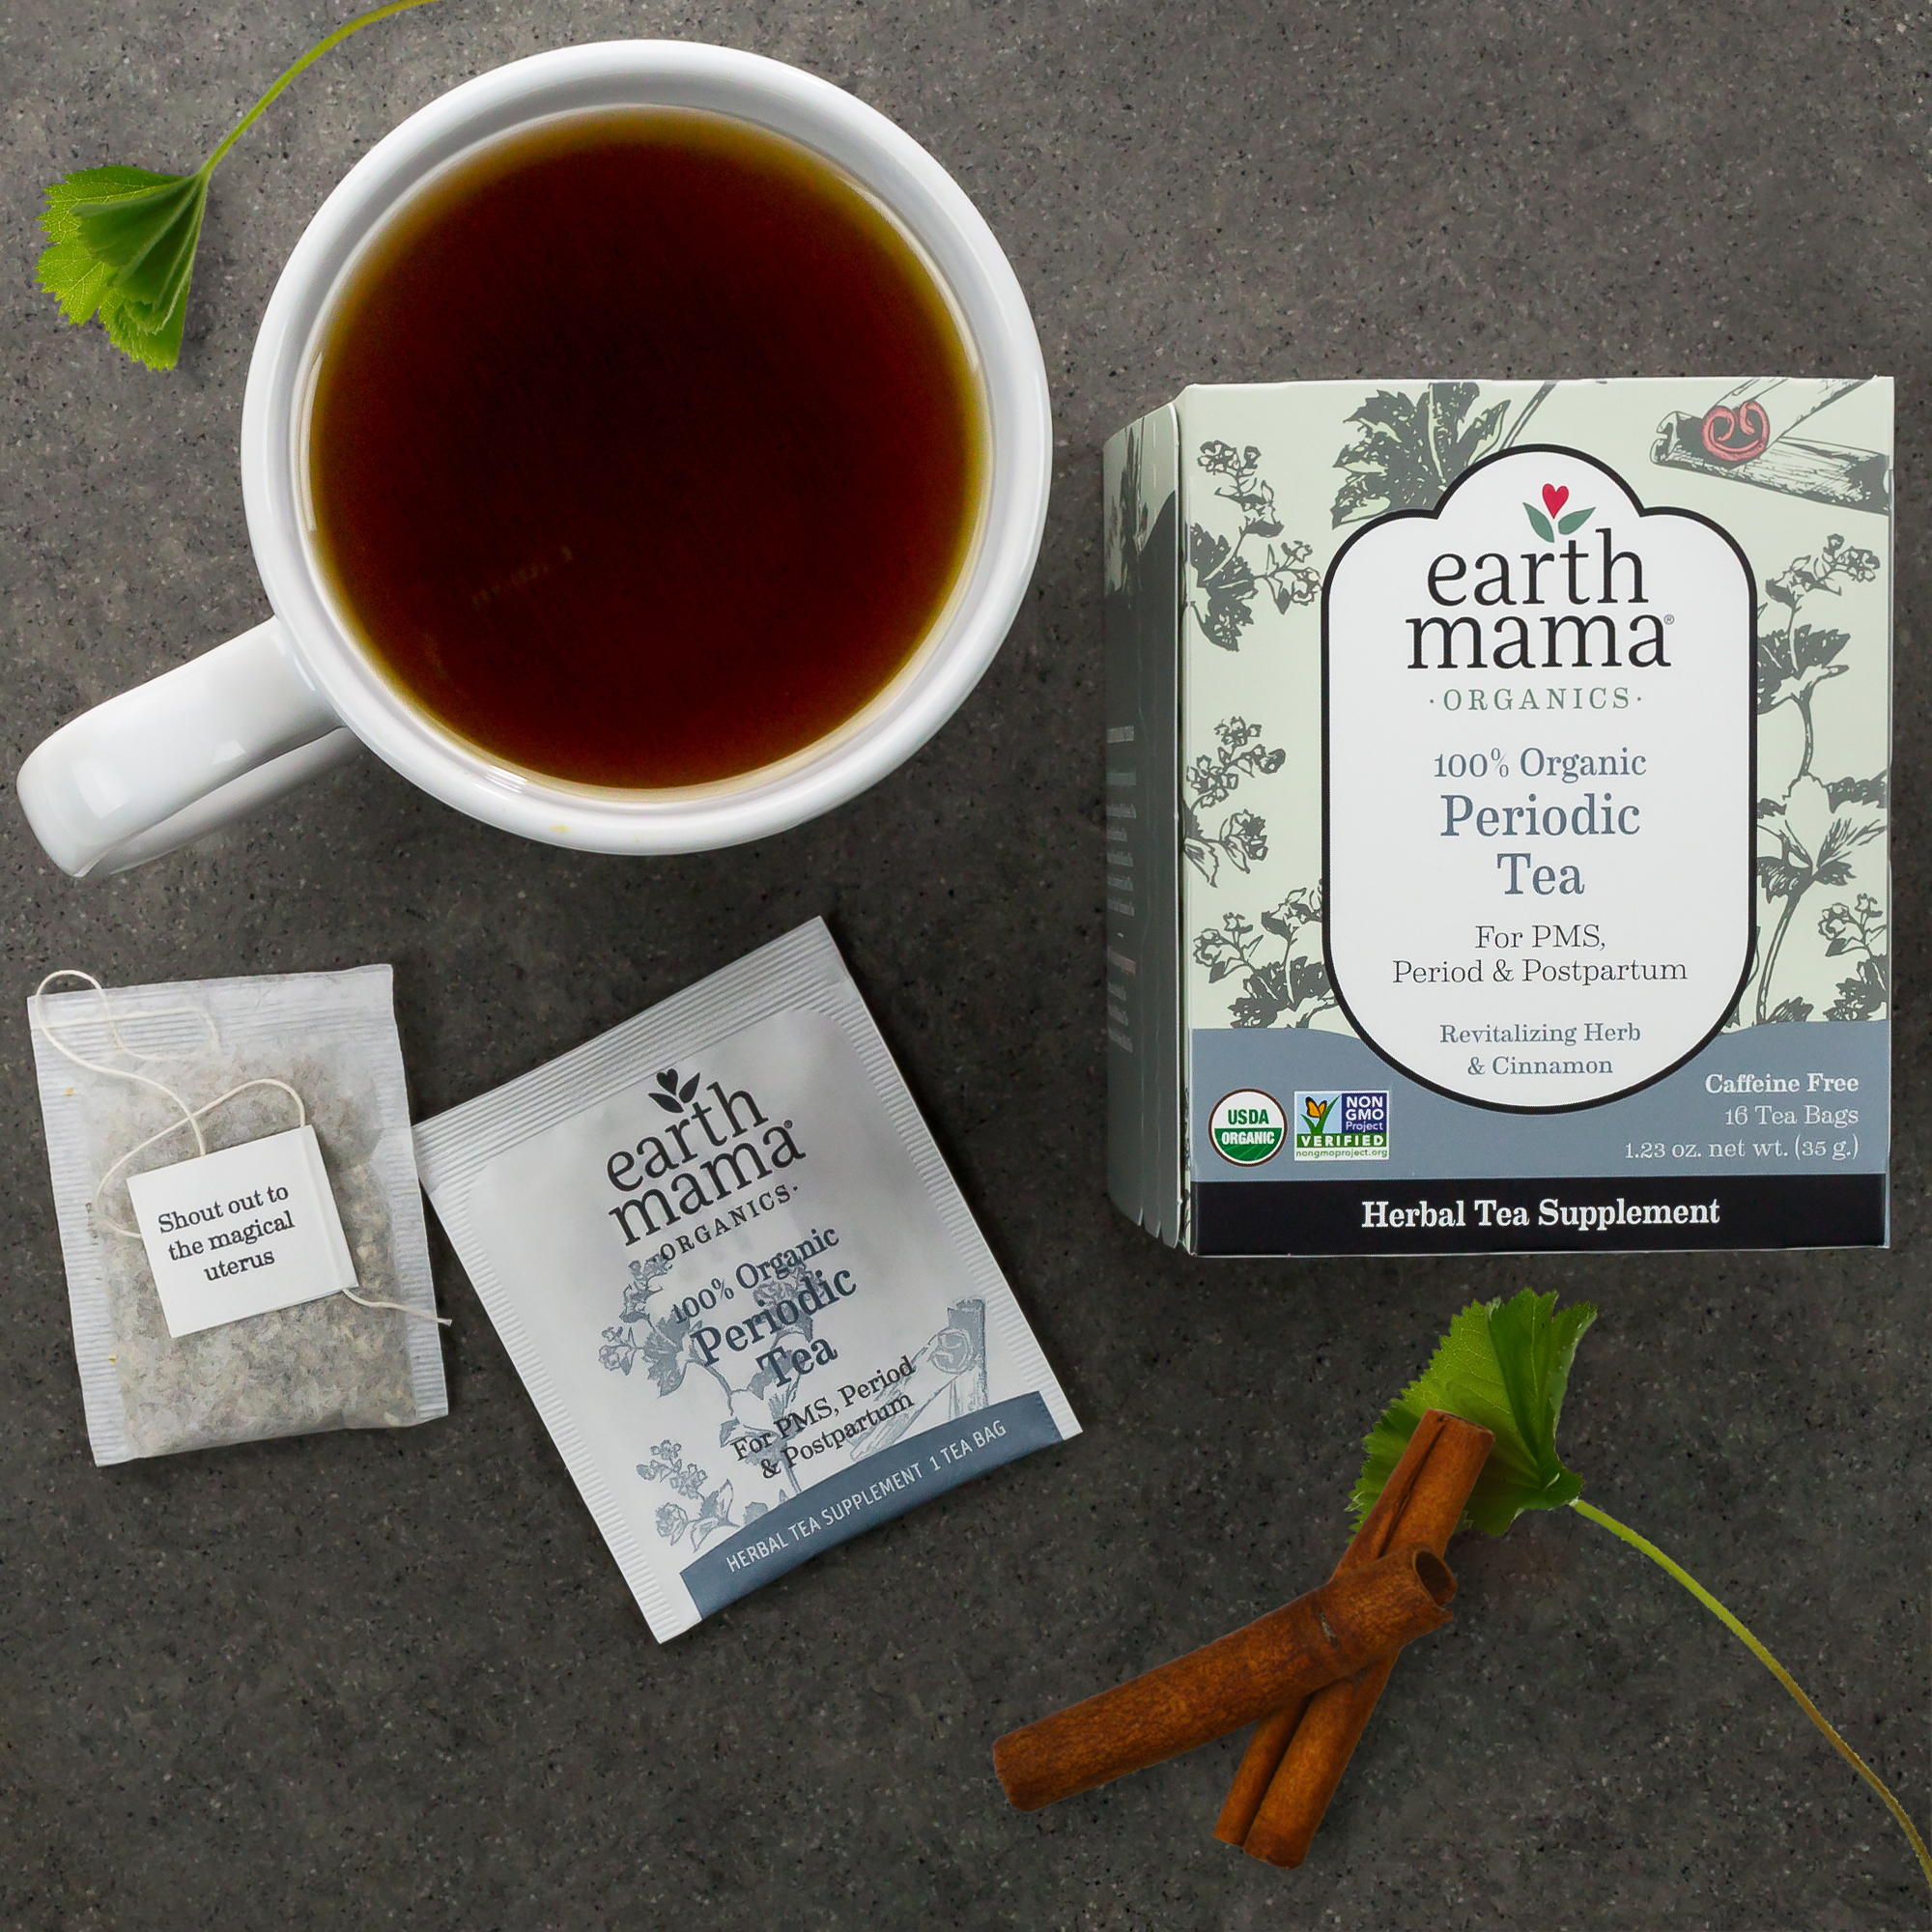 earth-mama-organic-periodic-tea-top-tea-bag